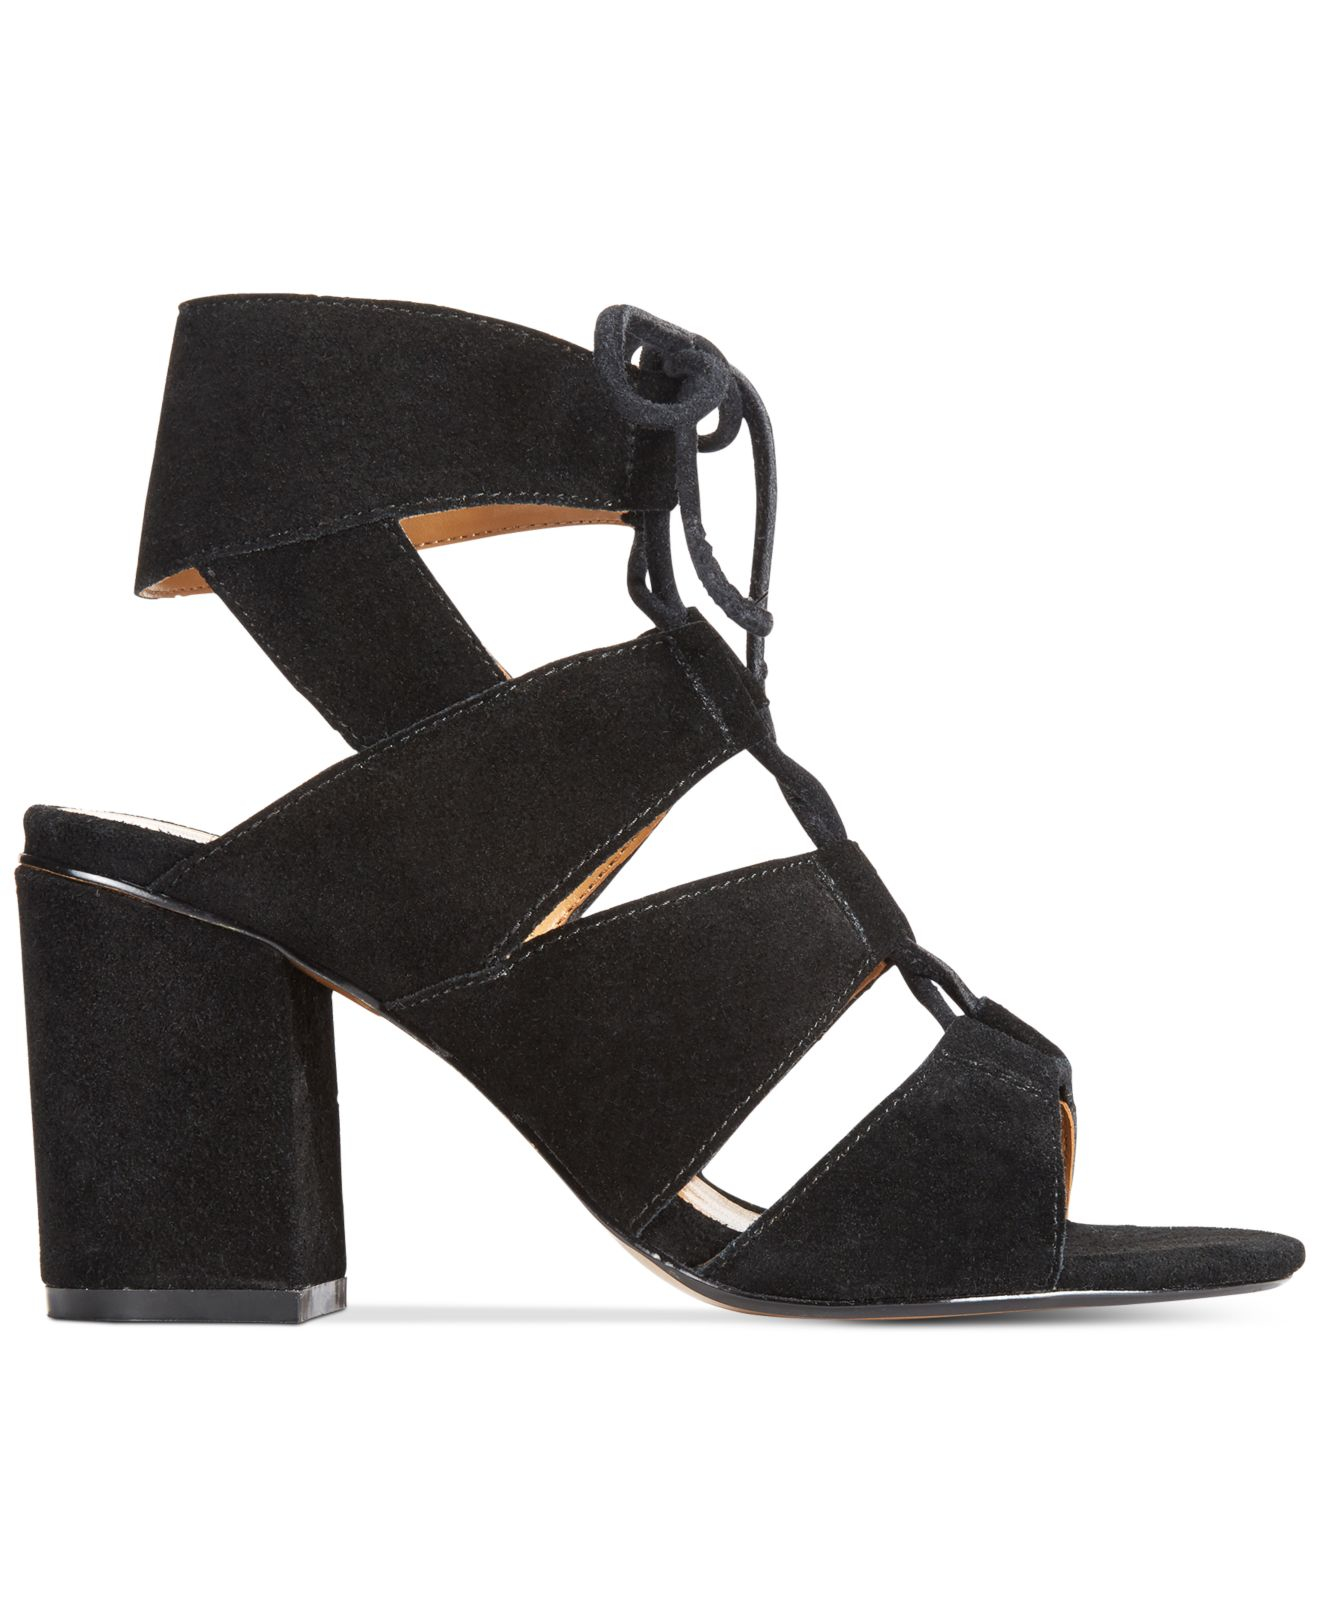 718fa6f5aac Lyst - Report Edolie Block Heel Lace-up Sandals in Black